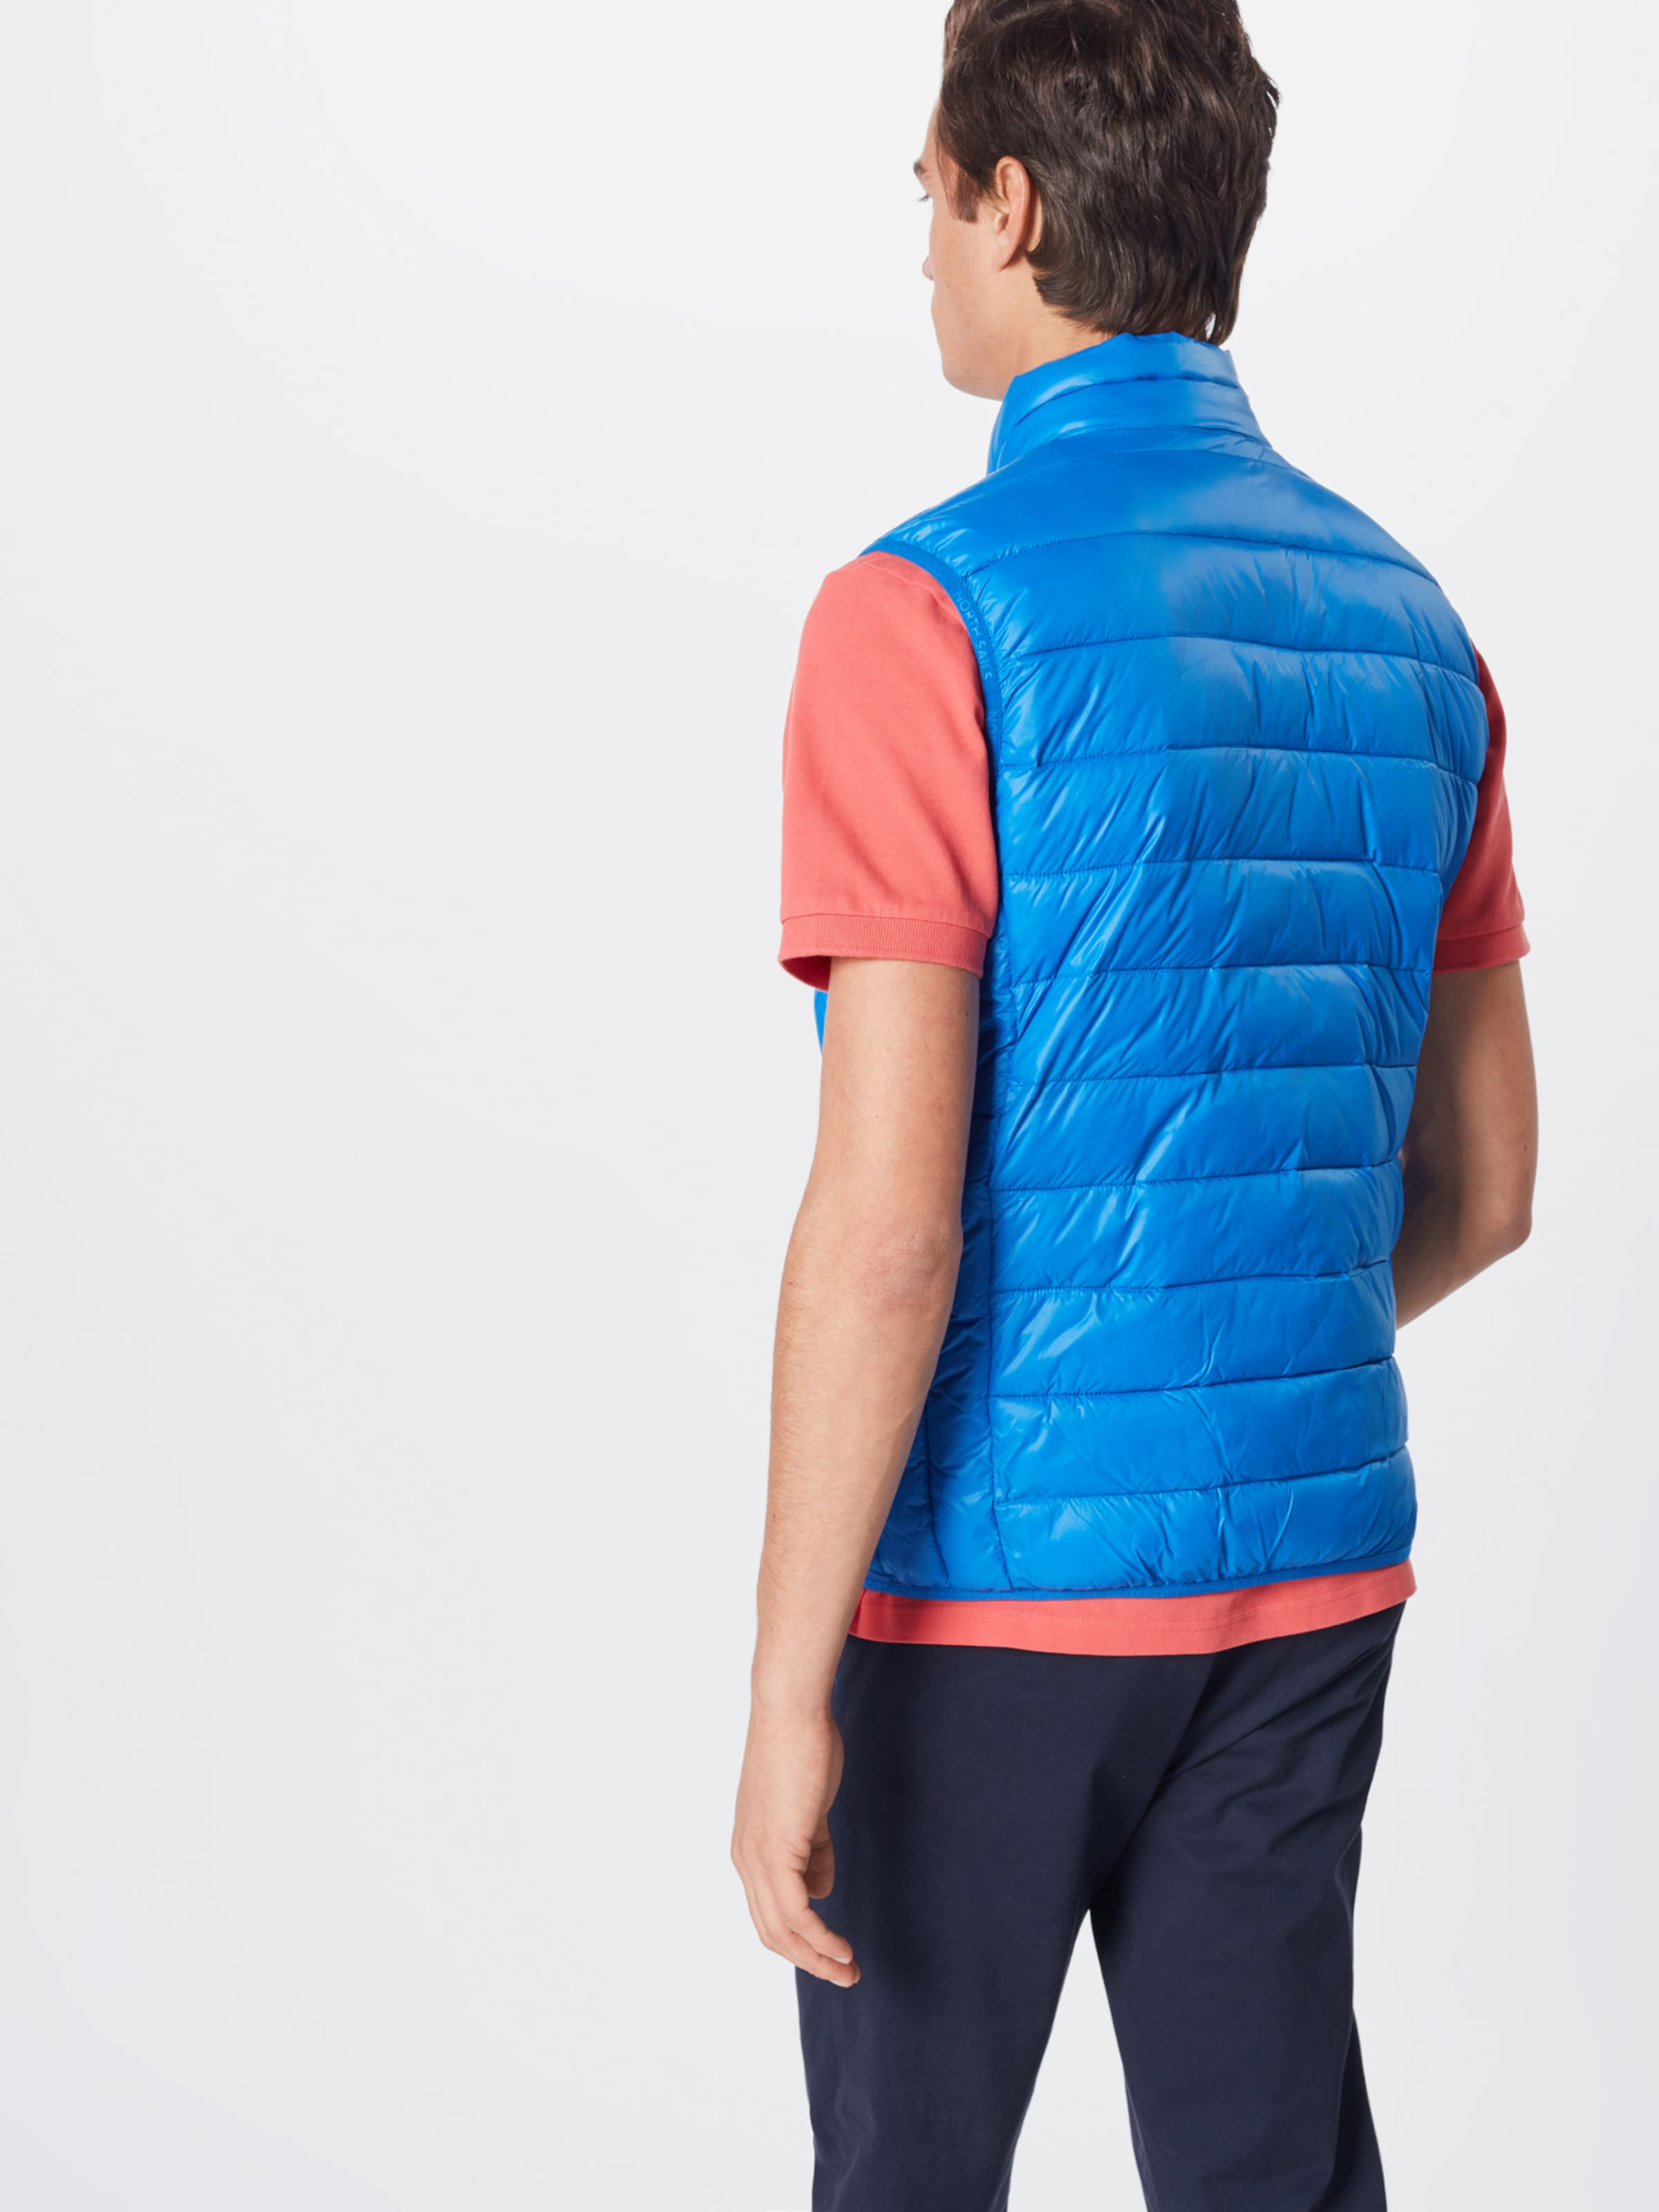 Light Super In Royalblau Vest' North Sails Weste 'north QrdCtsh